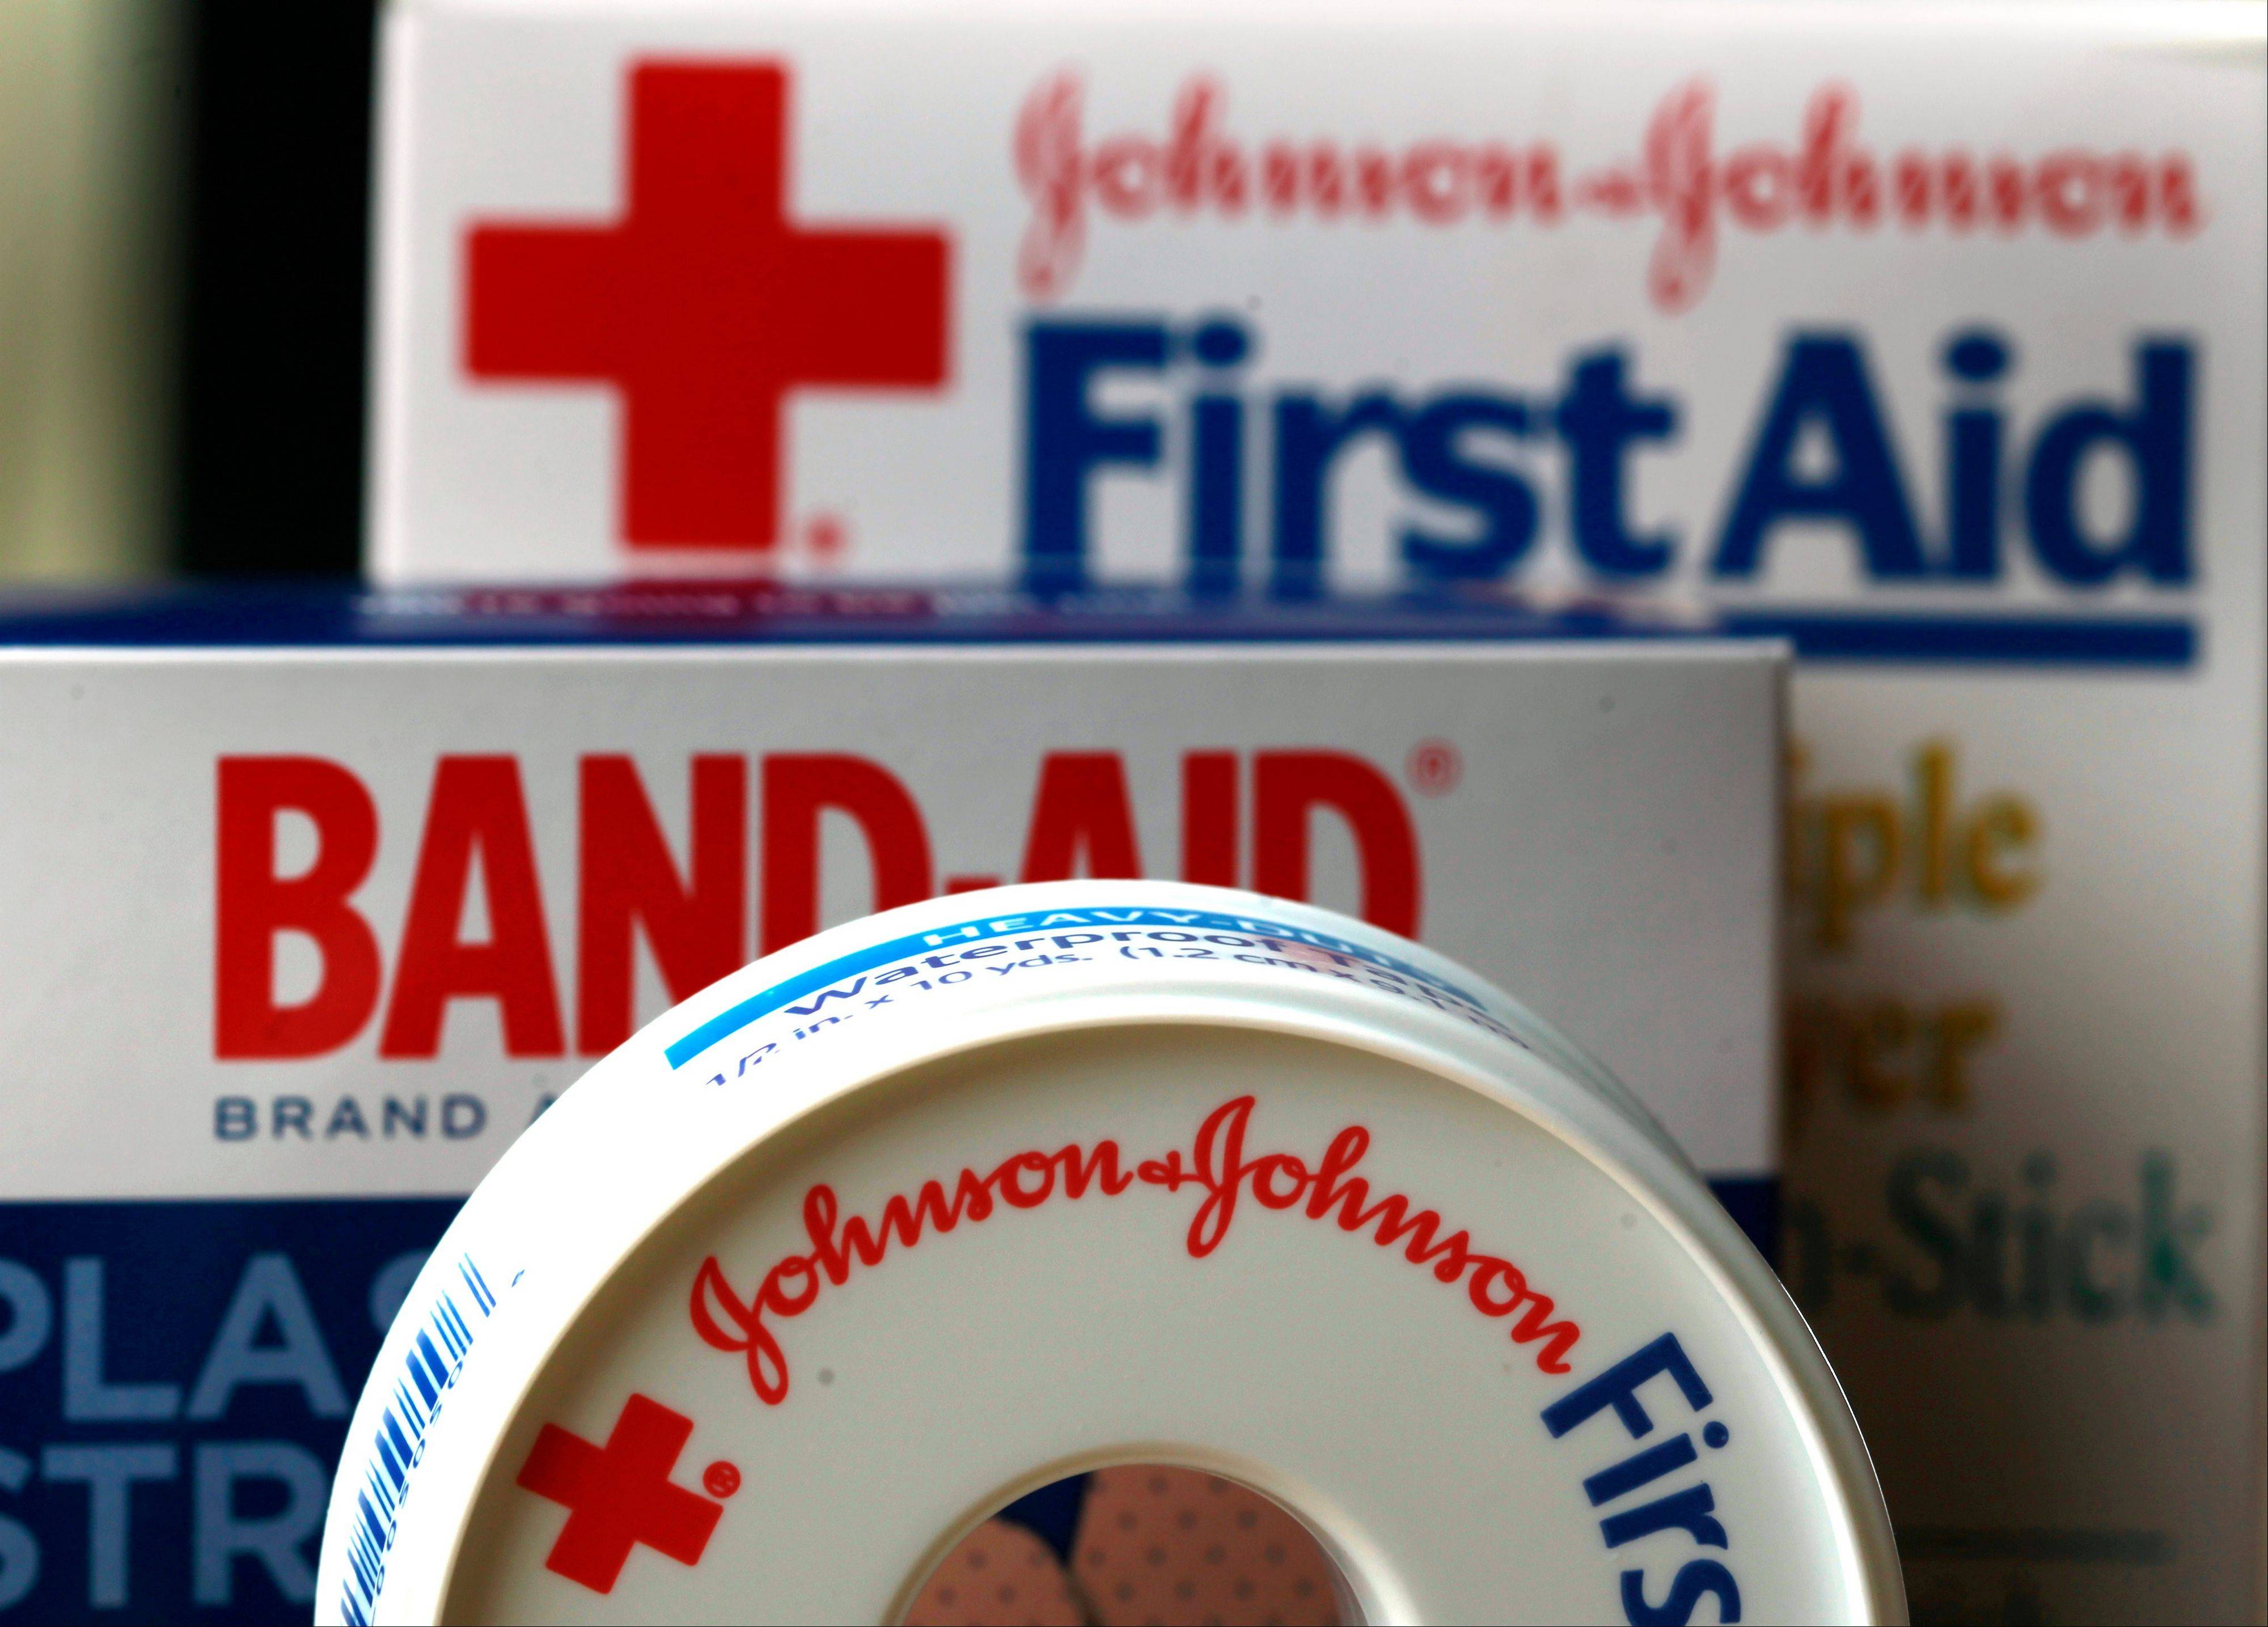 Johnson & Johnson, a health care giant that is struggling with tougher market conditions, ongoing manufacturing problems and other issues, lowered its profit forecast for the year after posting second-quarter net income that dropped by half. The maker of Band-Aids, medical devices and prescription drugs whose iconic image has been tarnished by legal and manufacturing lapses on Tuesday, July 17, 2012 noted some positive signs.